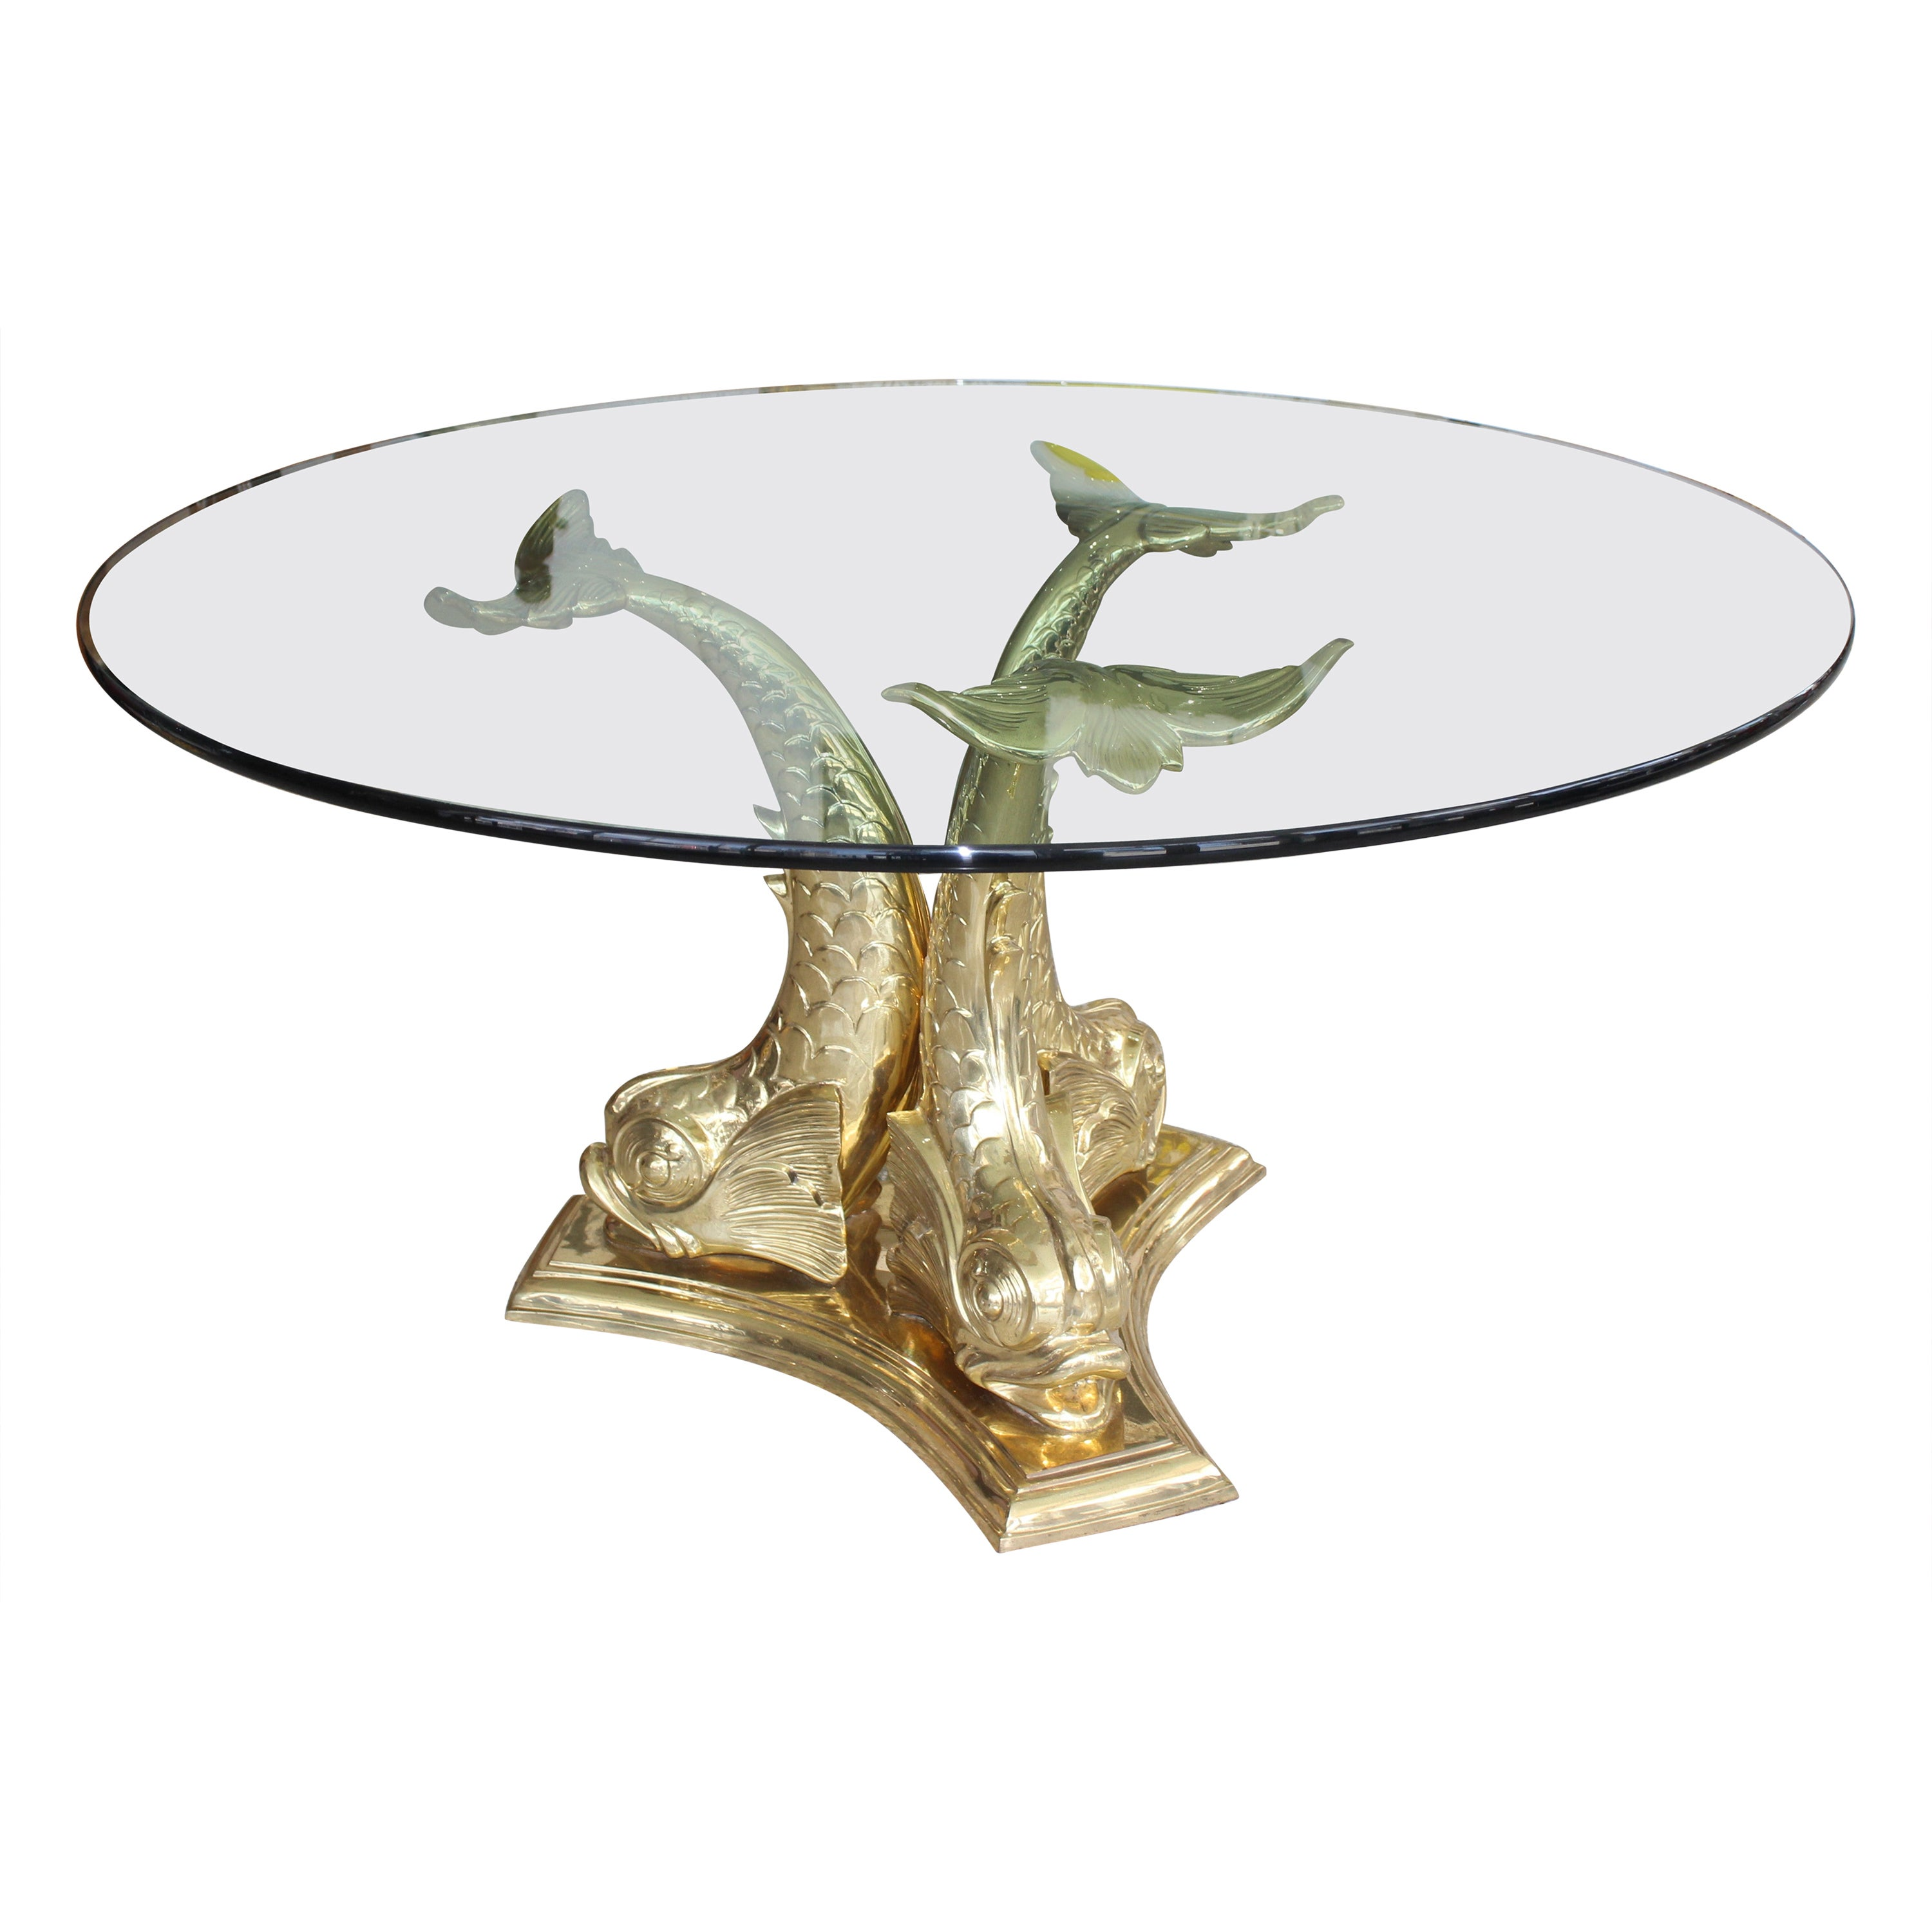 Dolphin Dining or Center Table Polished Brass and Glass